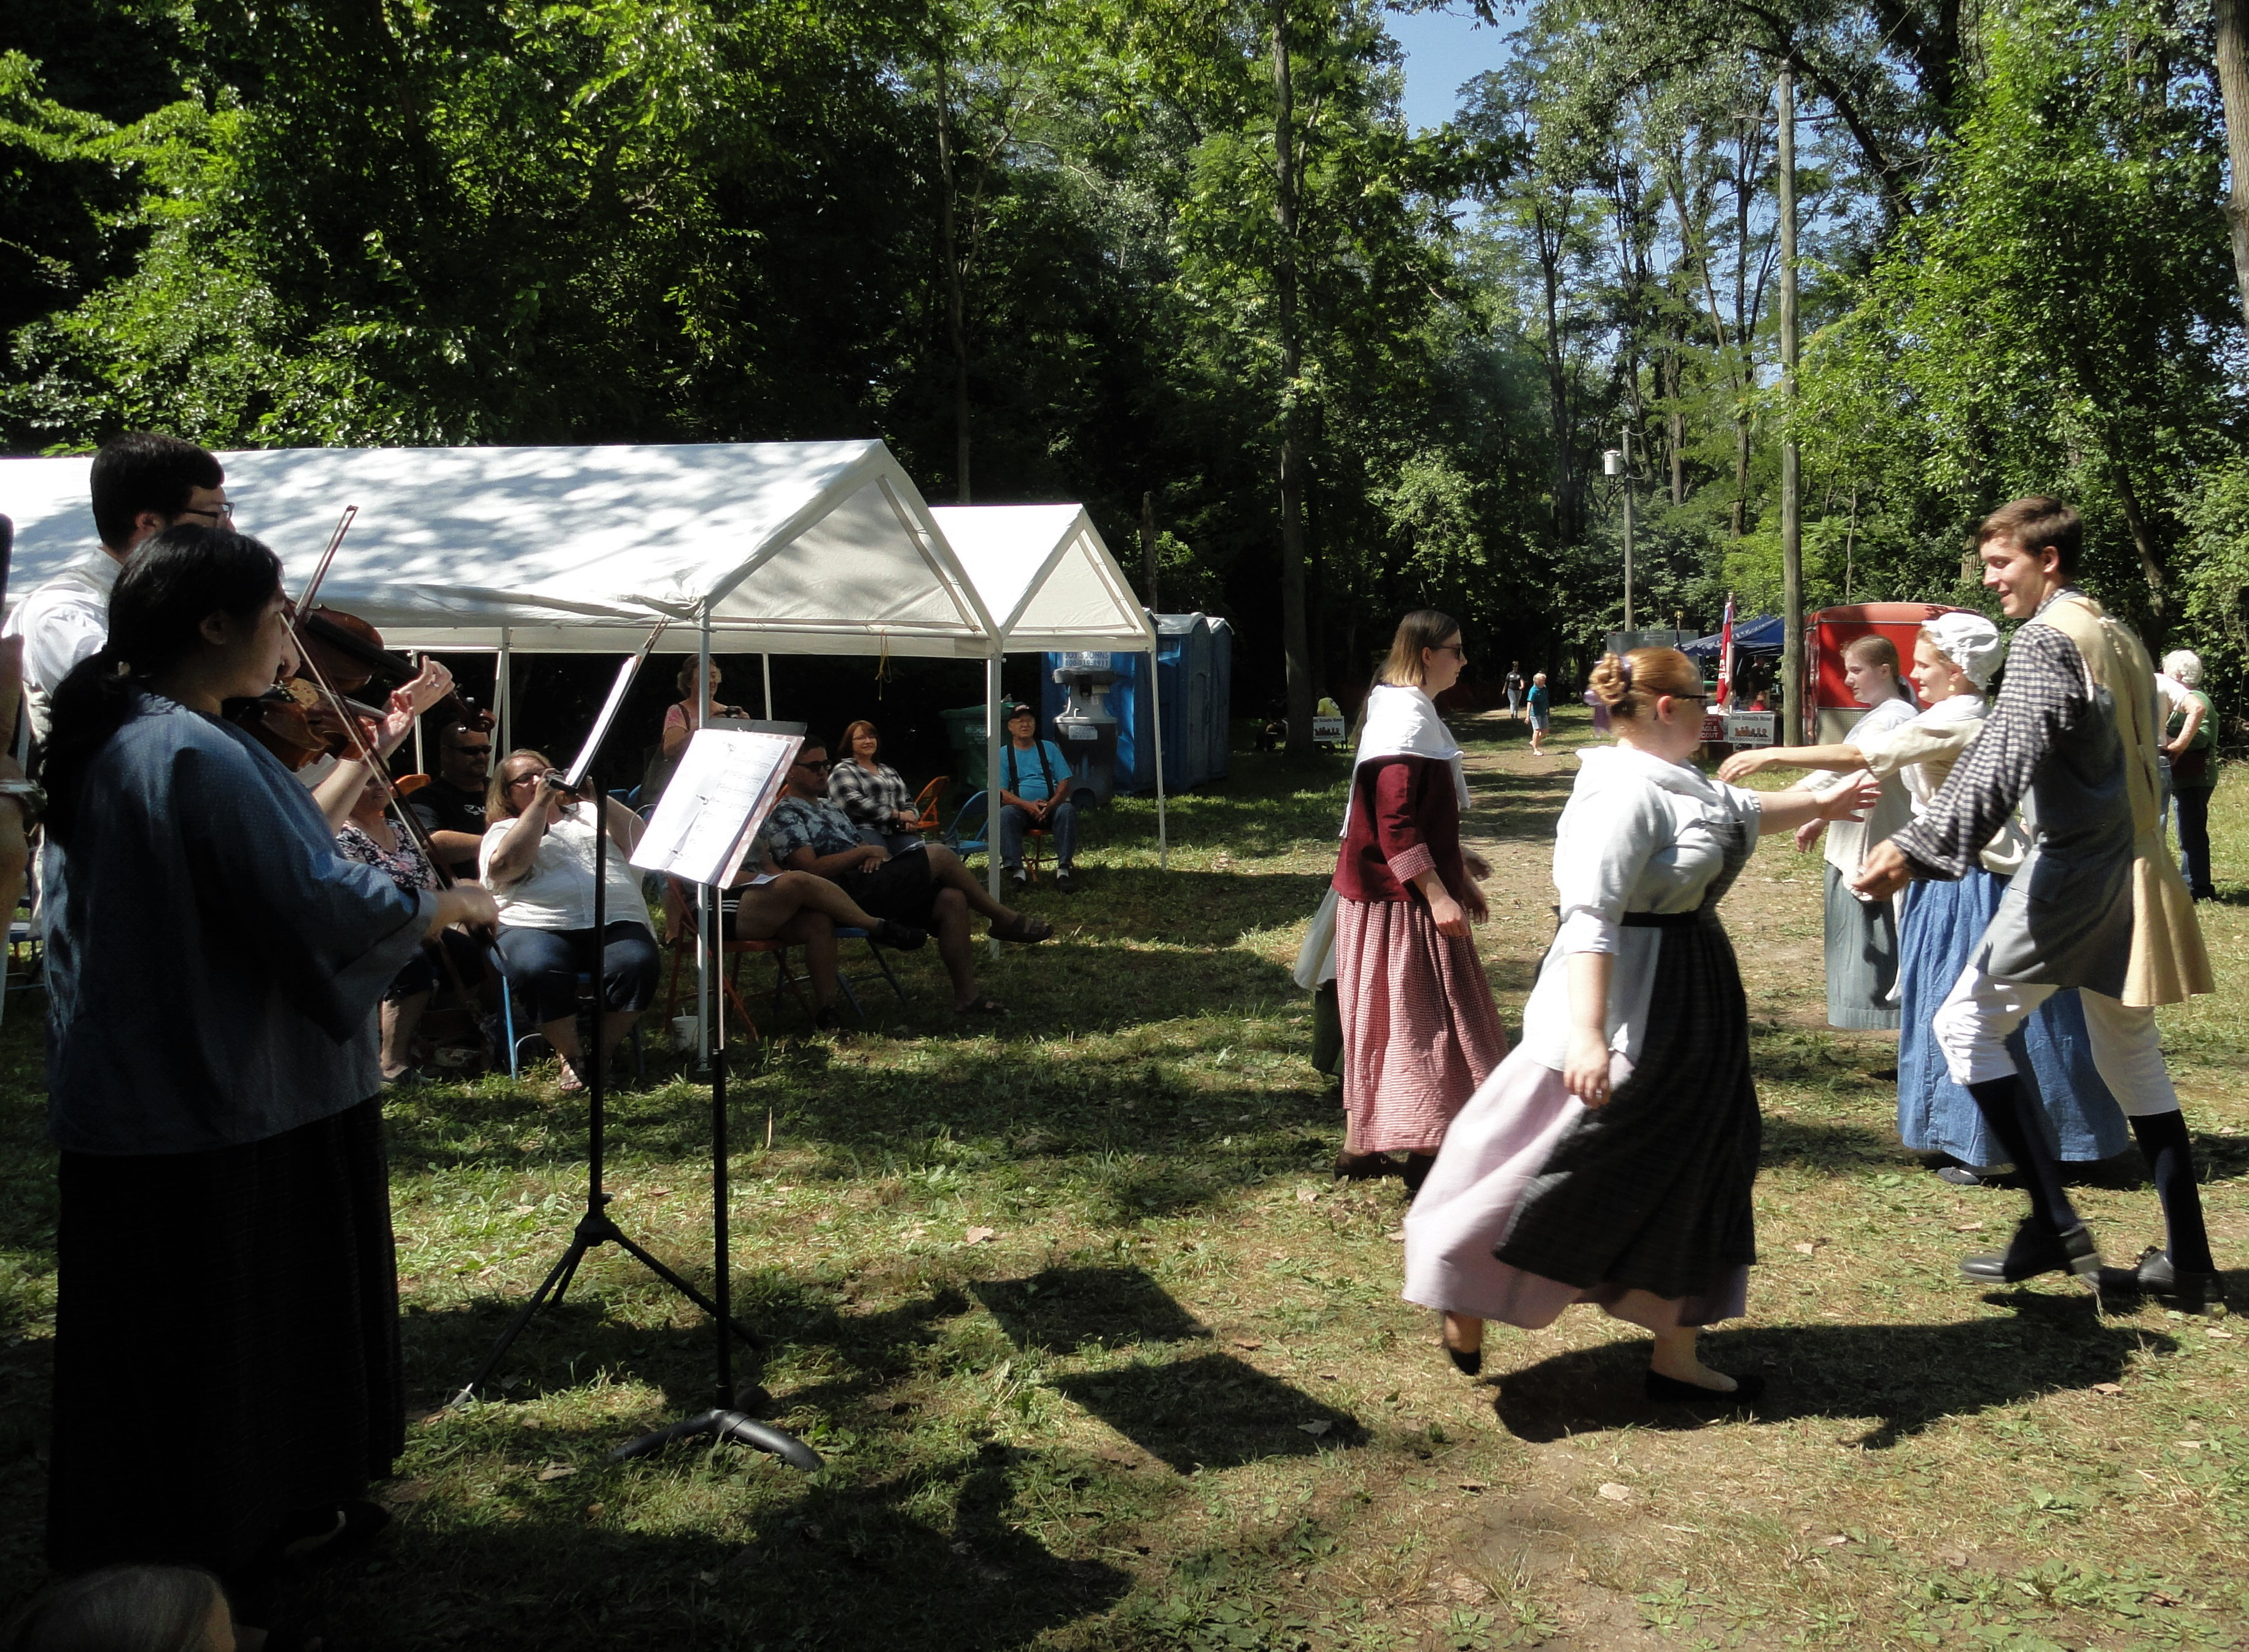 Living history demonstrators play music inhabitants of Fort St. Joseph might have listened to and demonstrate a popular dance of the period.